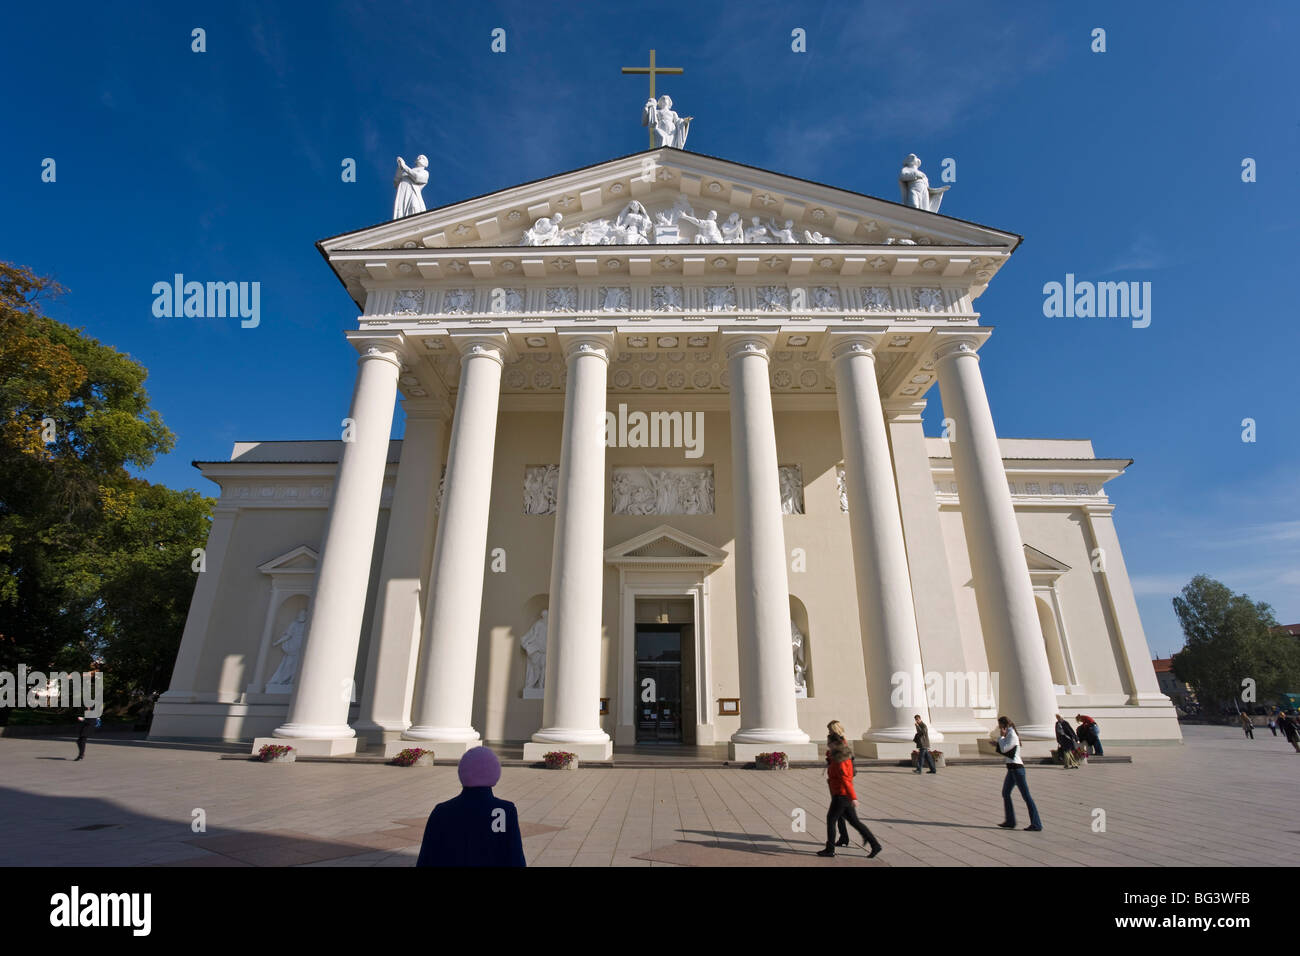 Cathedral, Vilnius, Lithuania, Baltic States, Europe Stock Photo